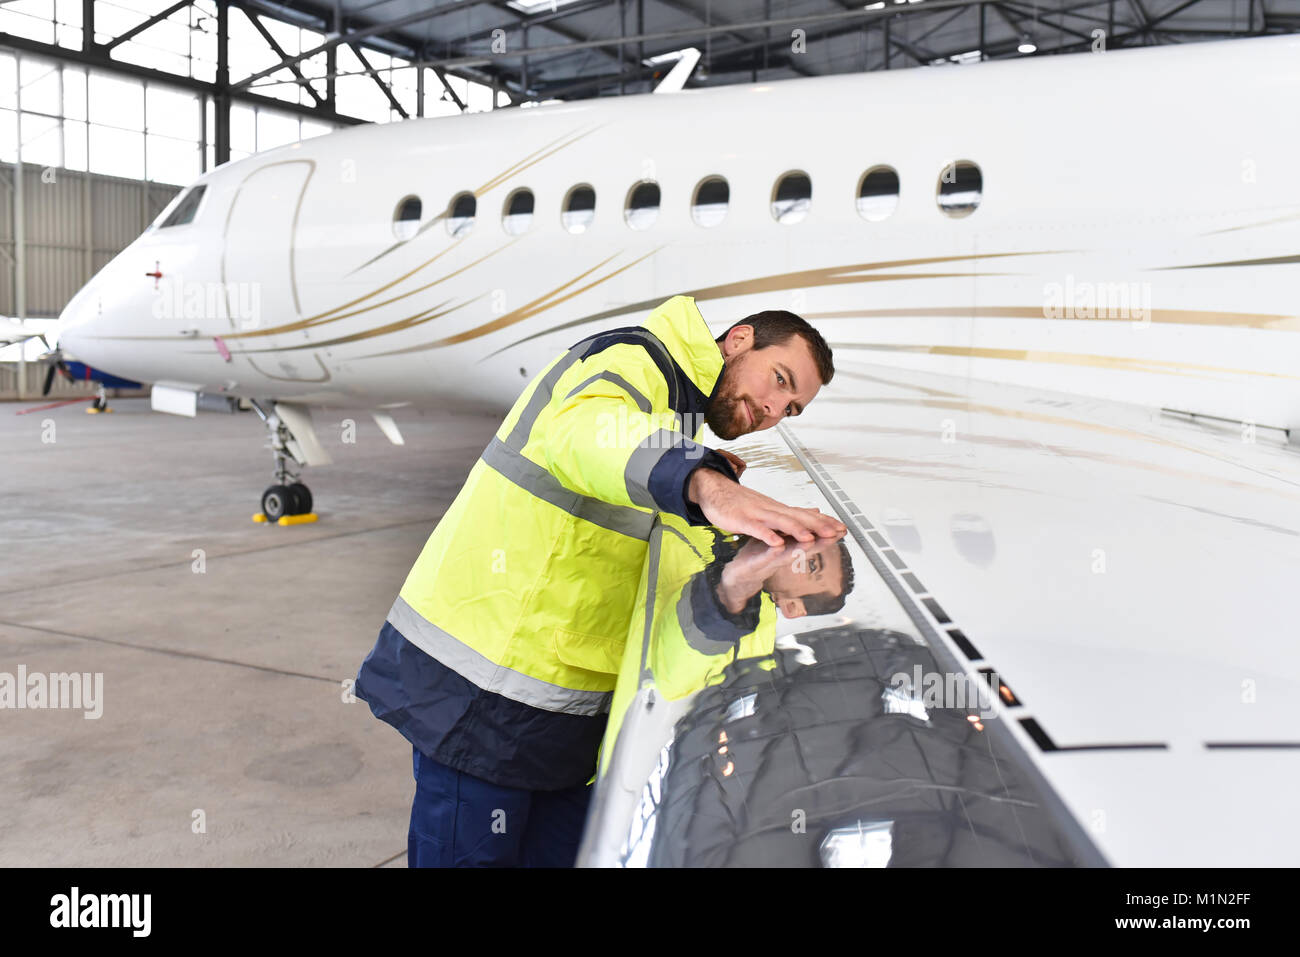 Aircraft mechanic inspects and checks the technology of a jet in a hangar at the airport - Stock Image